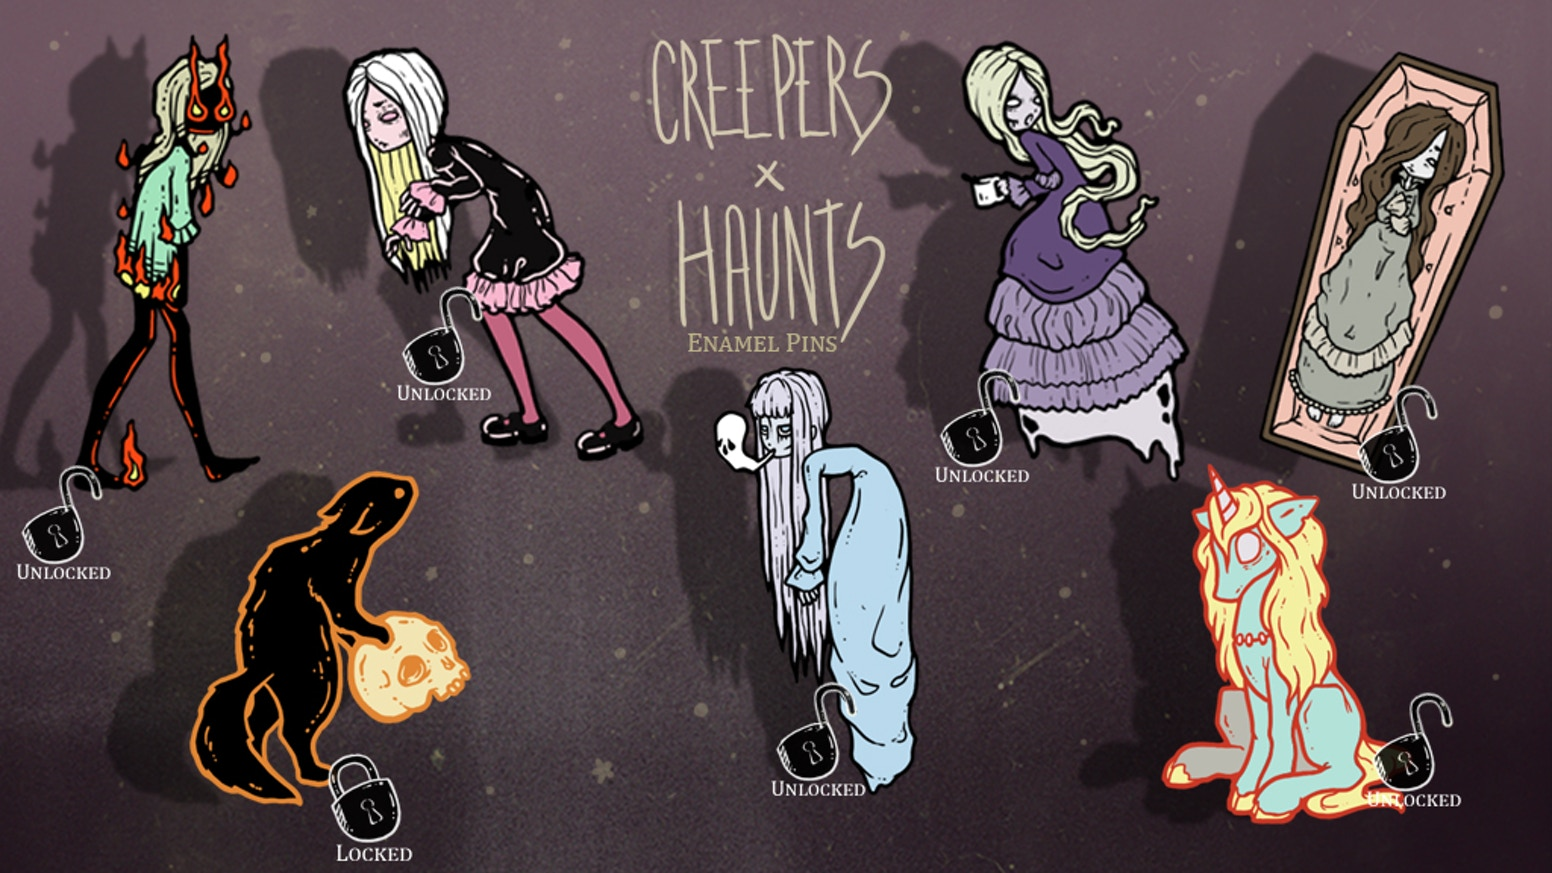 Creepy, Cute, Spooky, Enamel PINS!  Featuring vampires, ghosts, cats, coffee and more by Gothic and Lowbrow fantasy artist, White Stag.